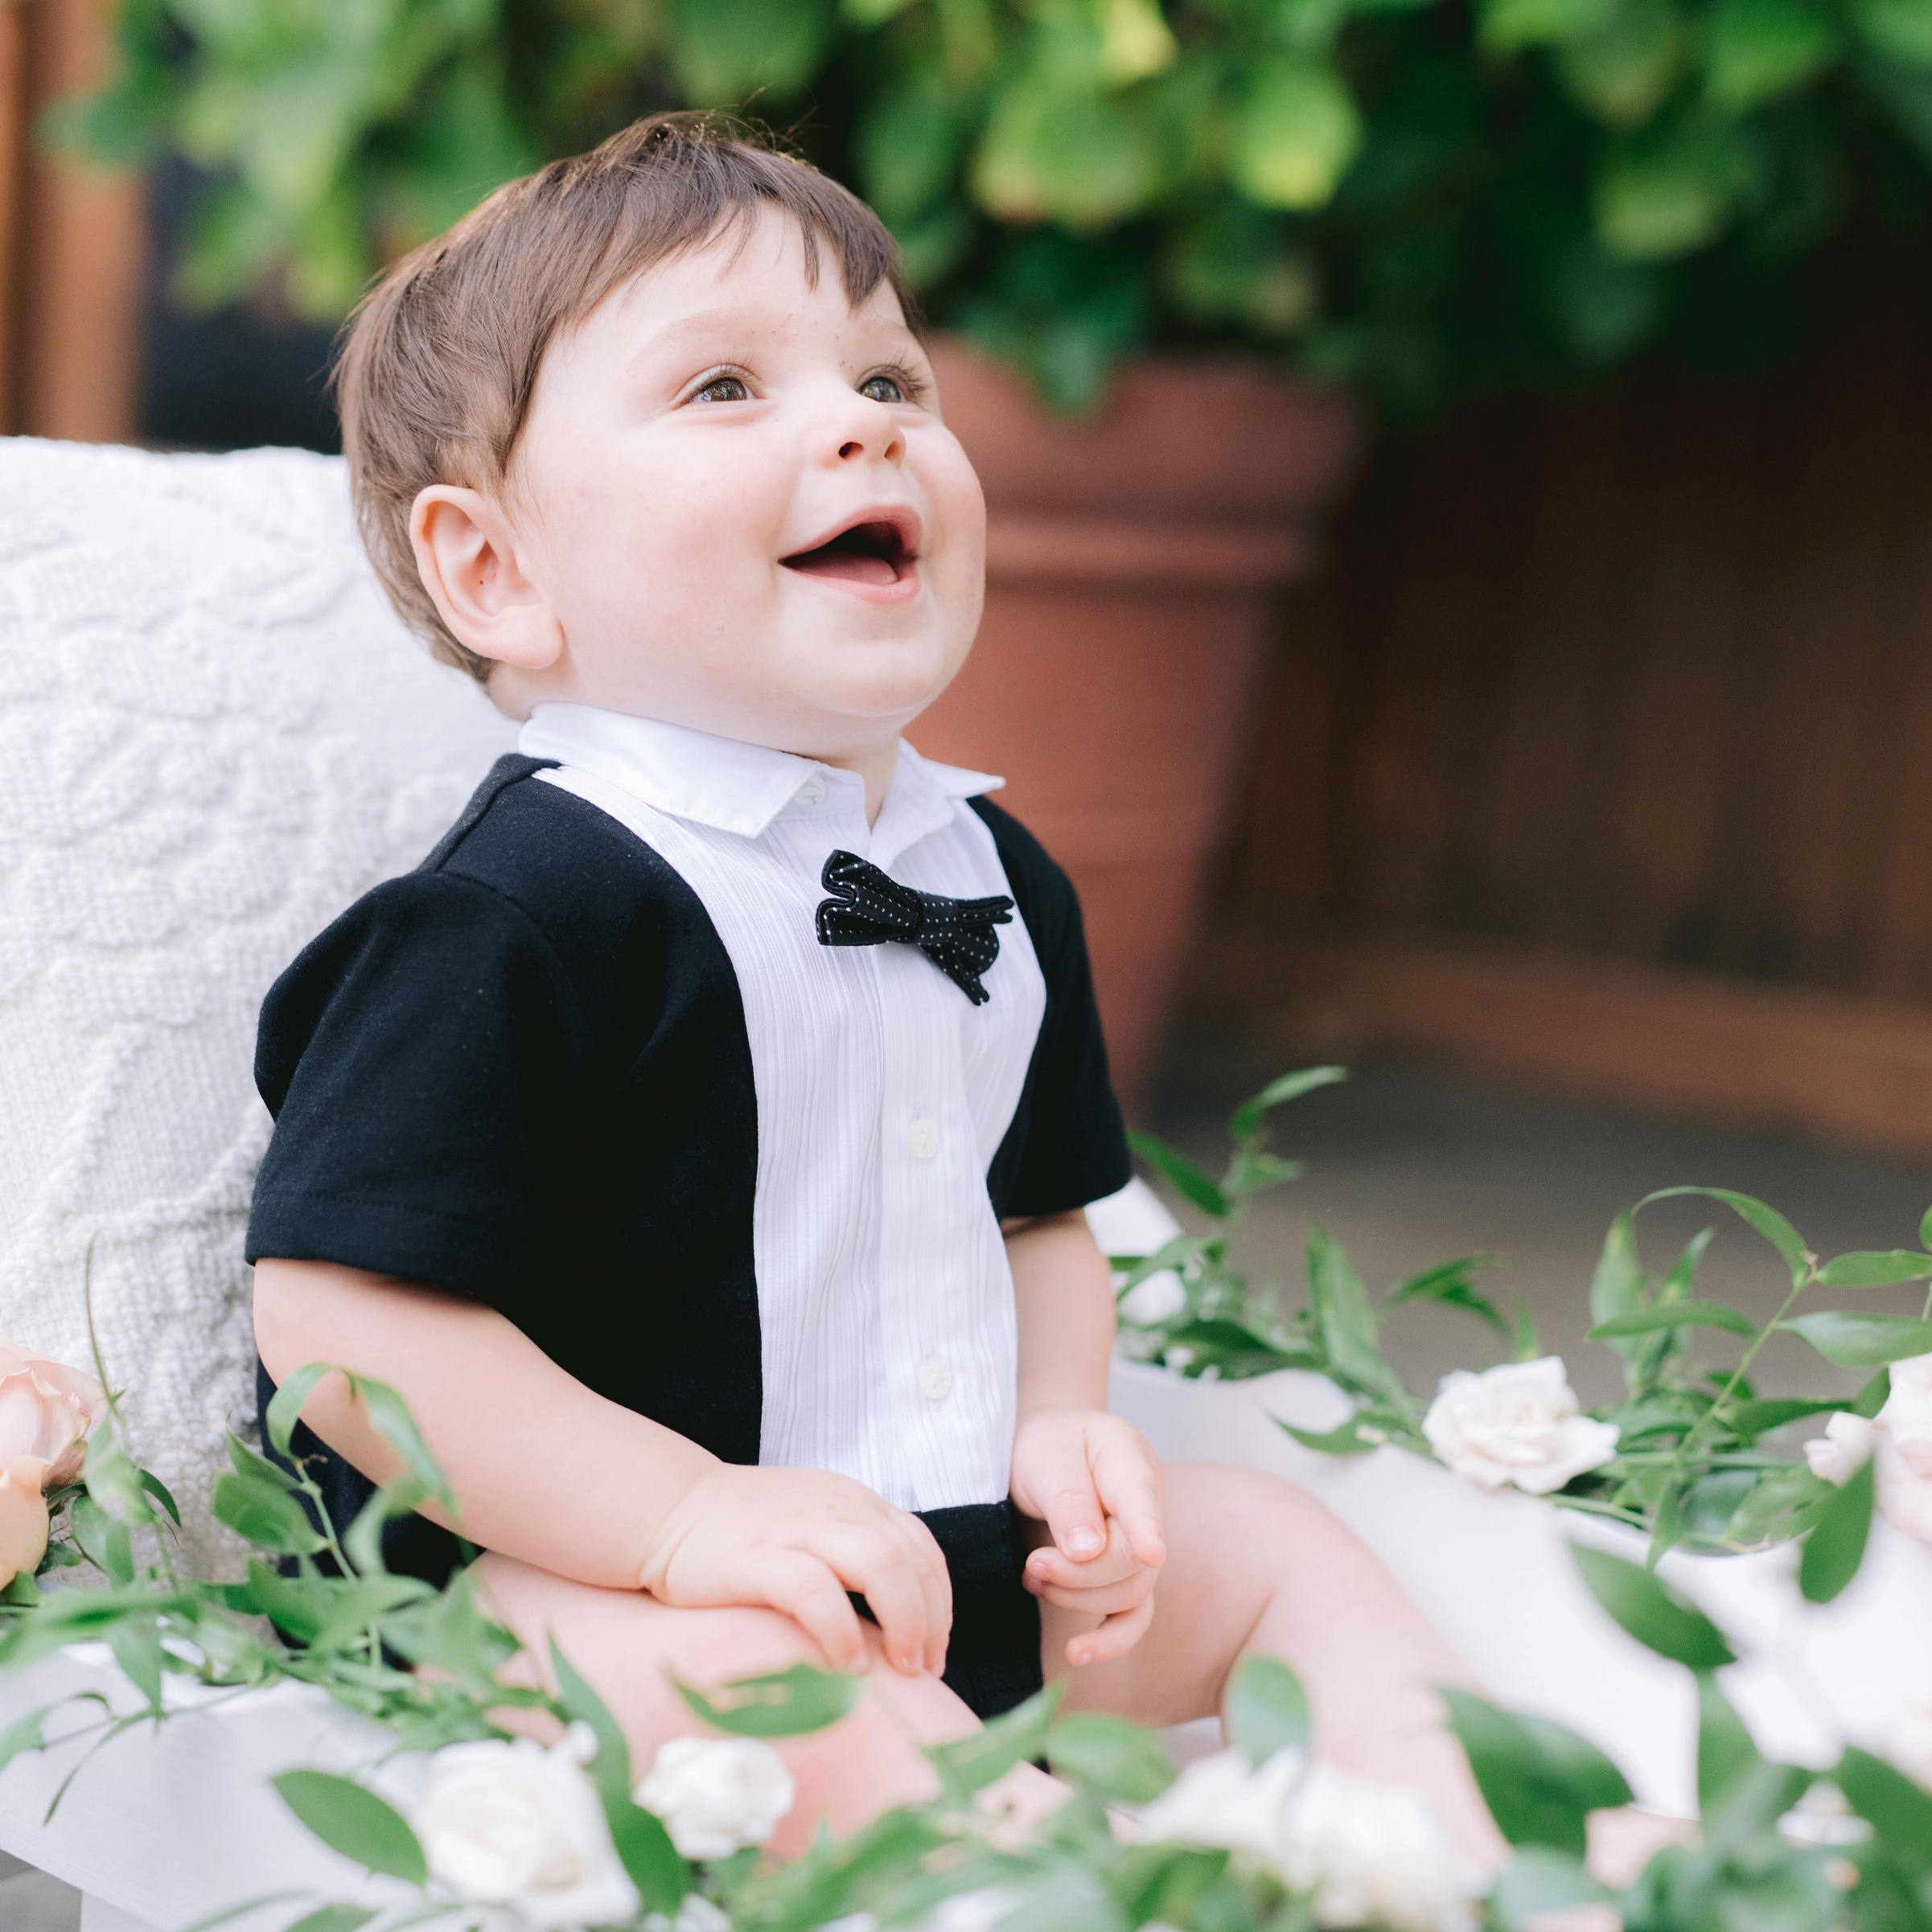 My cousin Adam pulled Chase down the aisle in this beautiful white wagon. Chase was all smiles in his D&G playsuit for the whole wedding.